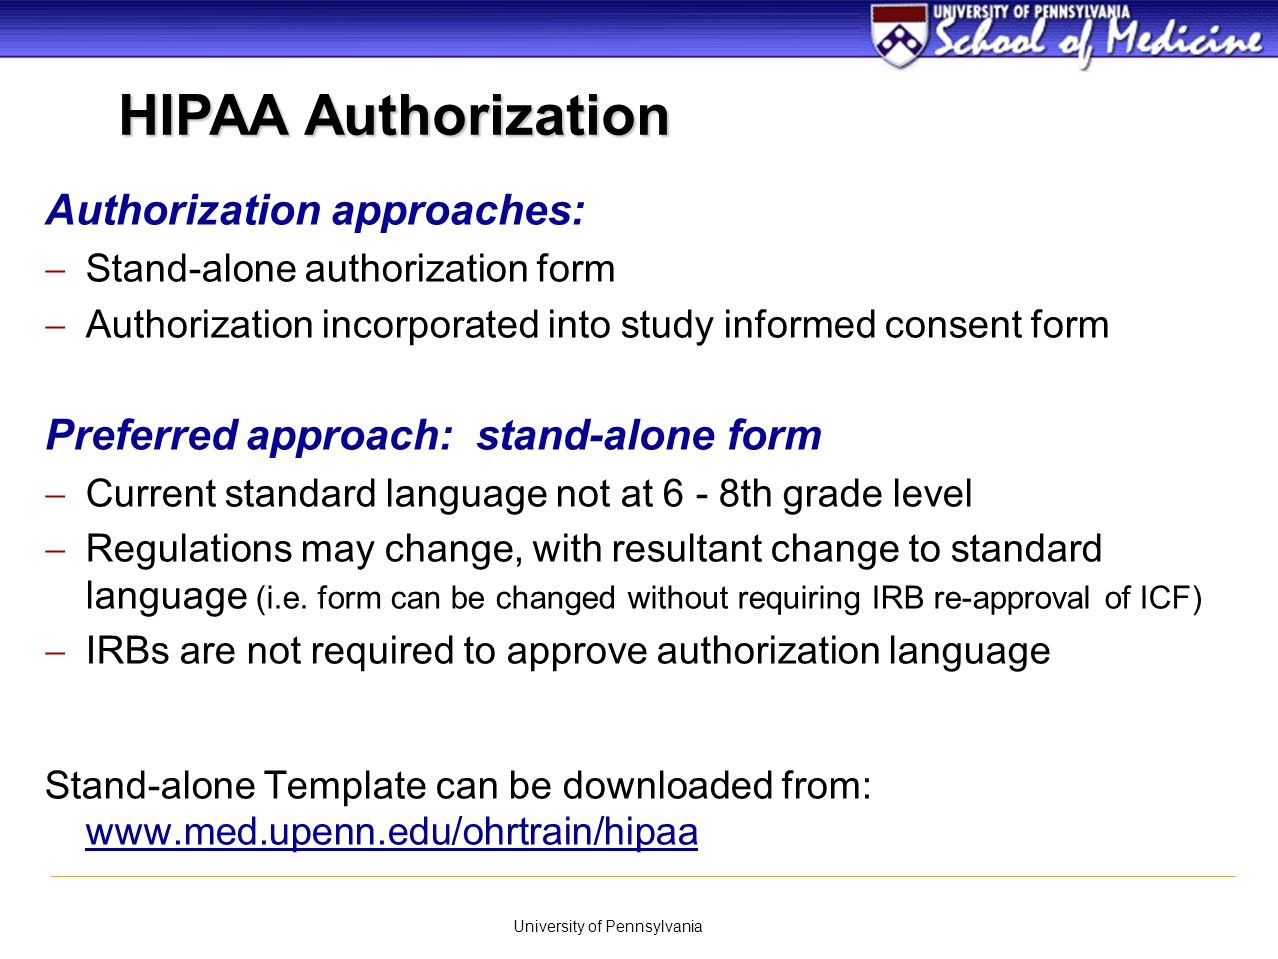 University of Pennsylvania  Individual Authorization is a one-time individual permission to use or disclose PHI for non-transaction and payment activities (includes research).